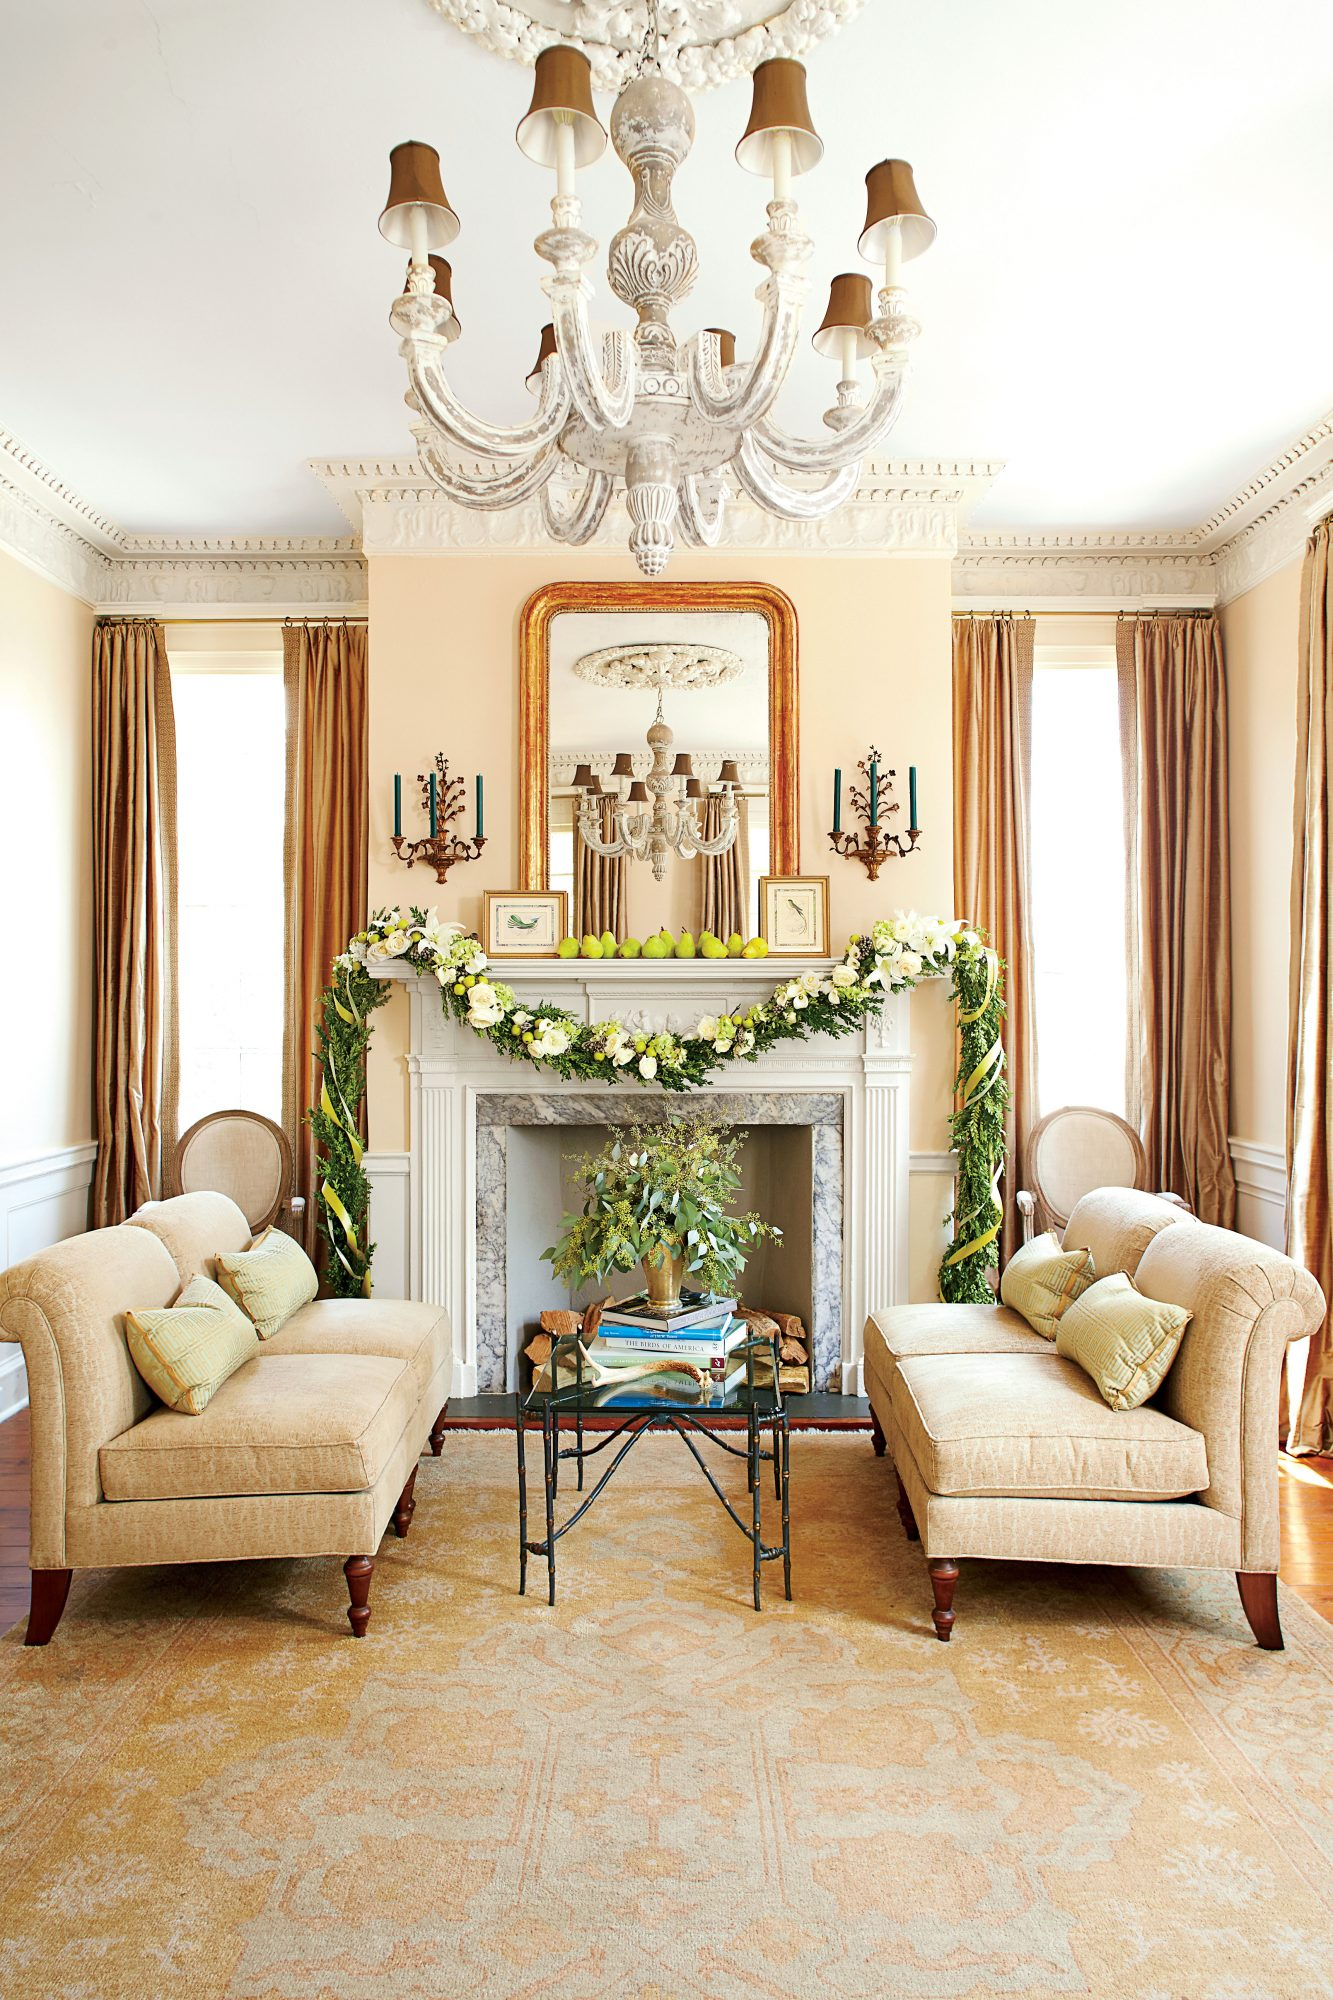 Living Room Fireplace with Garland